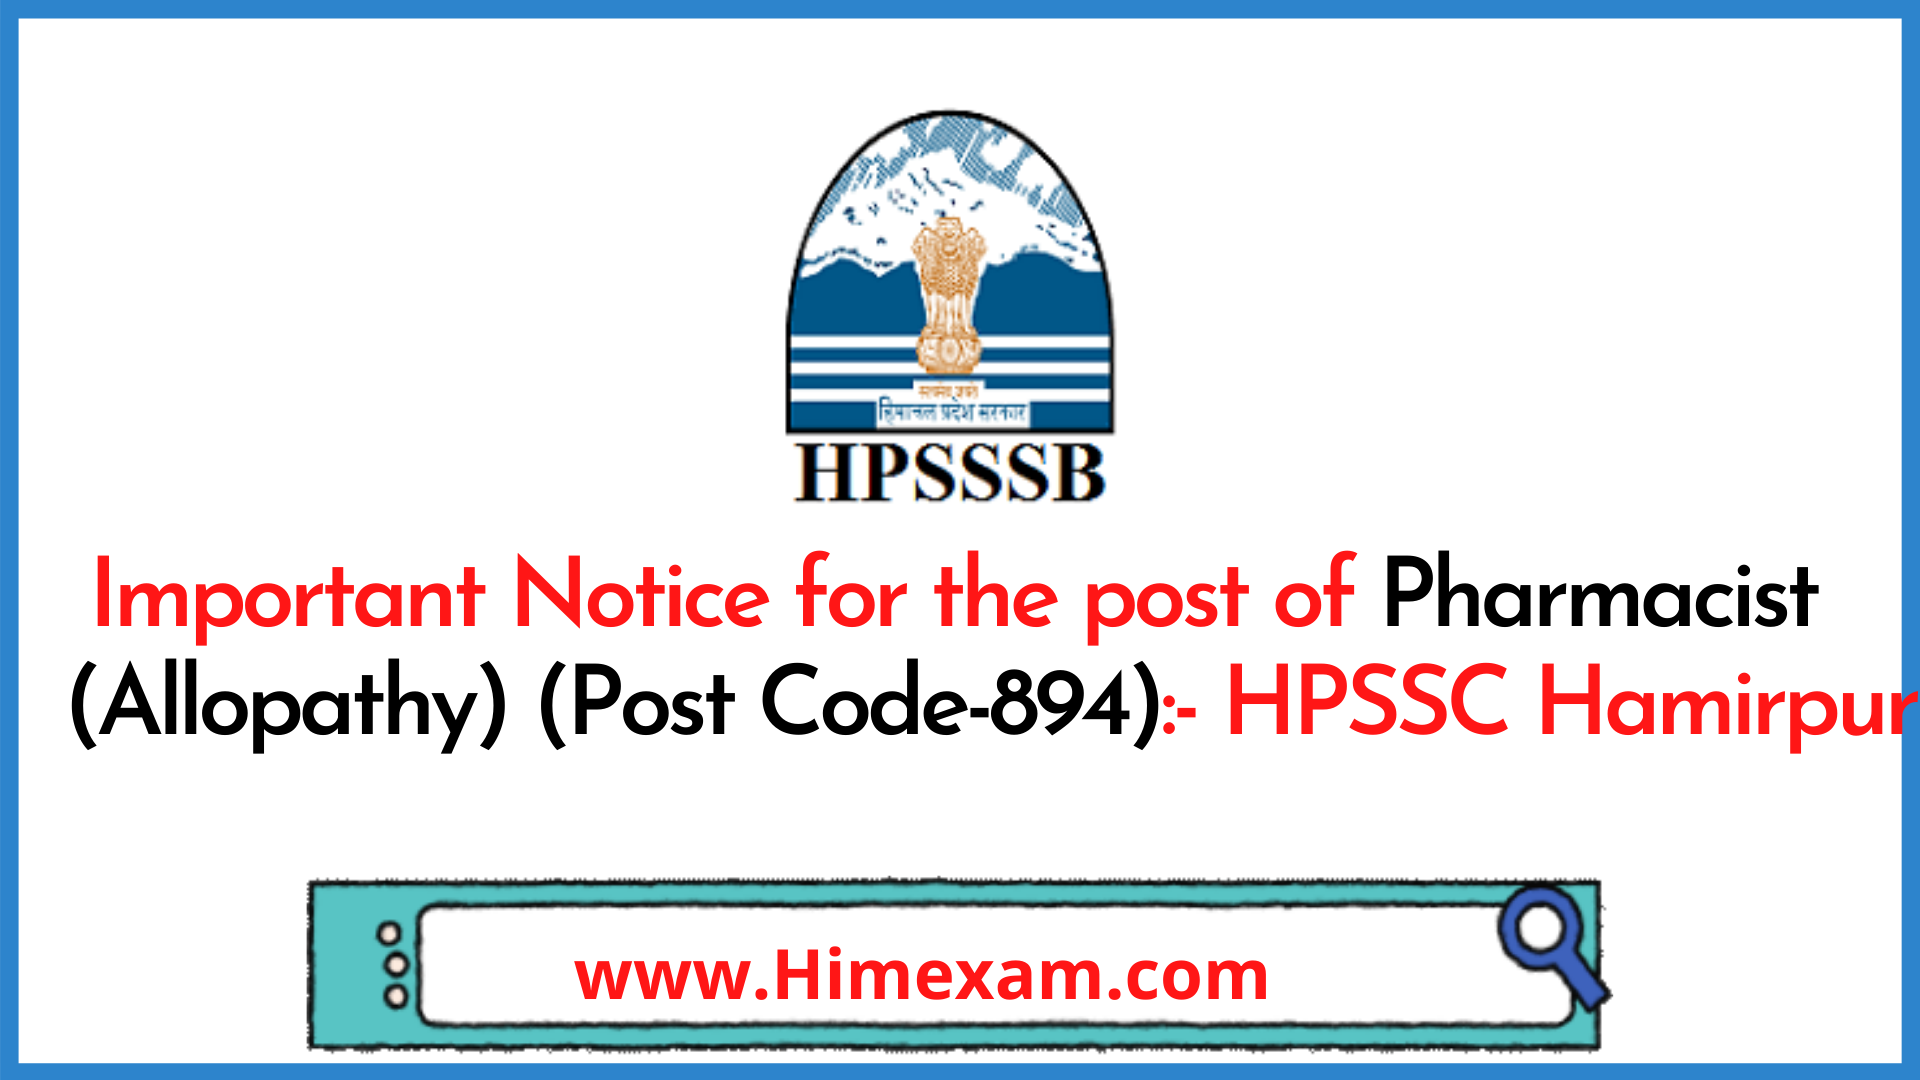 Important Notice for the post of Pharmacist (Allopathy) (Post Code-894):- HPSSC Hamirpur